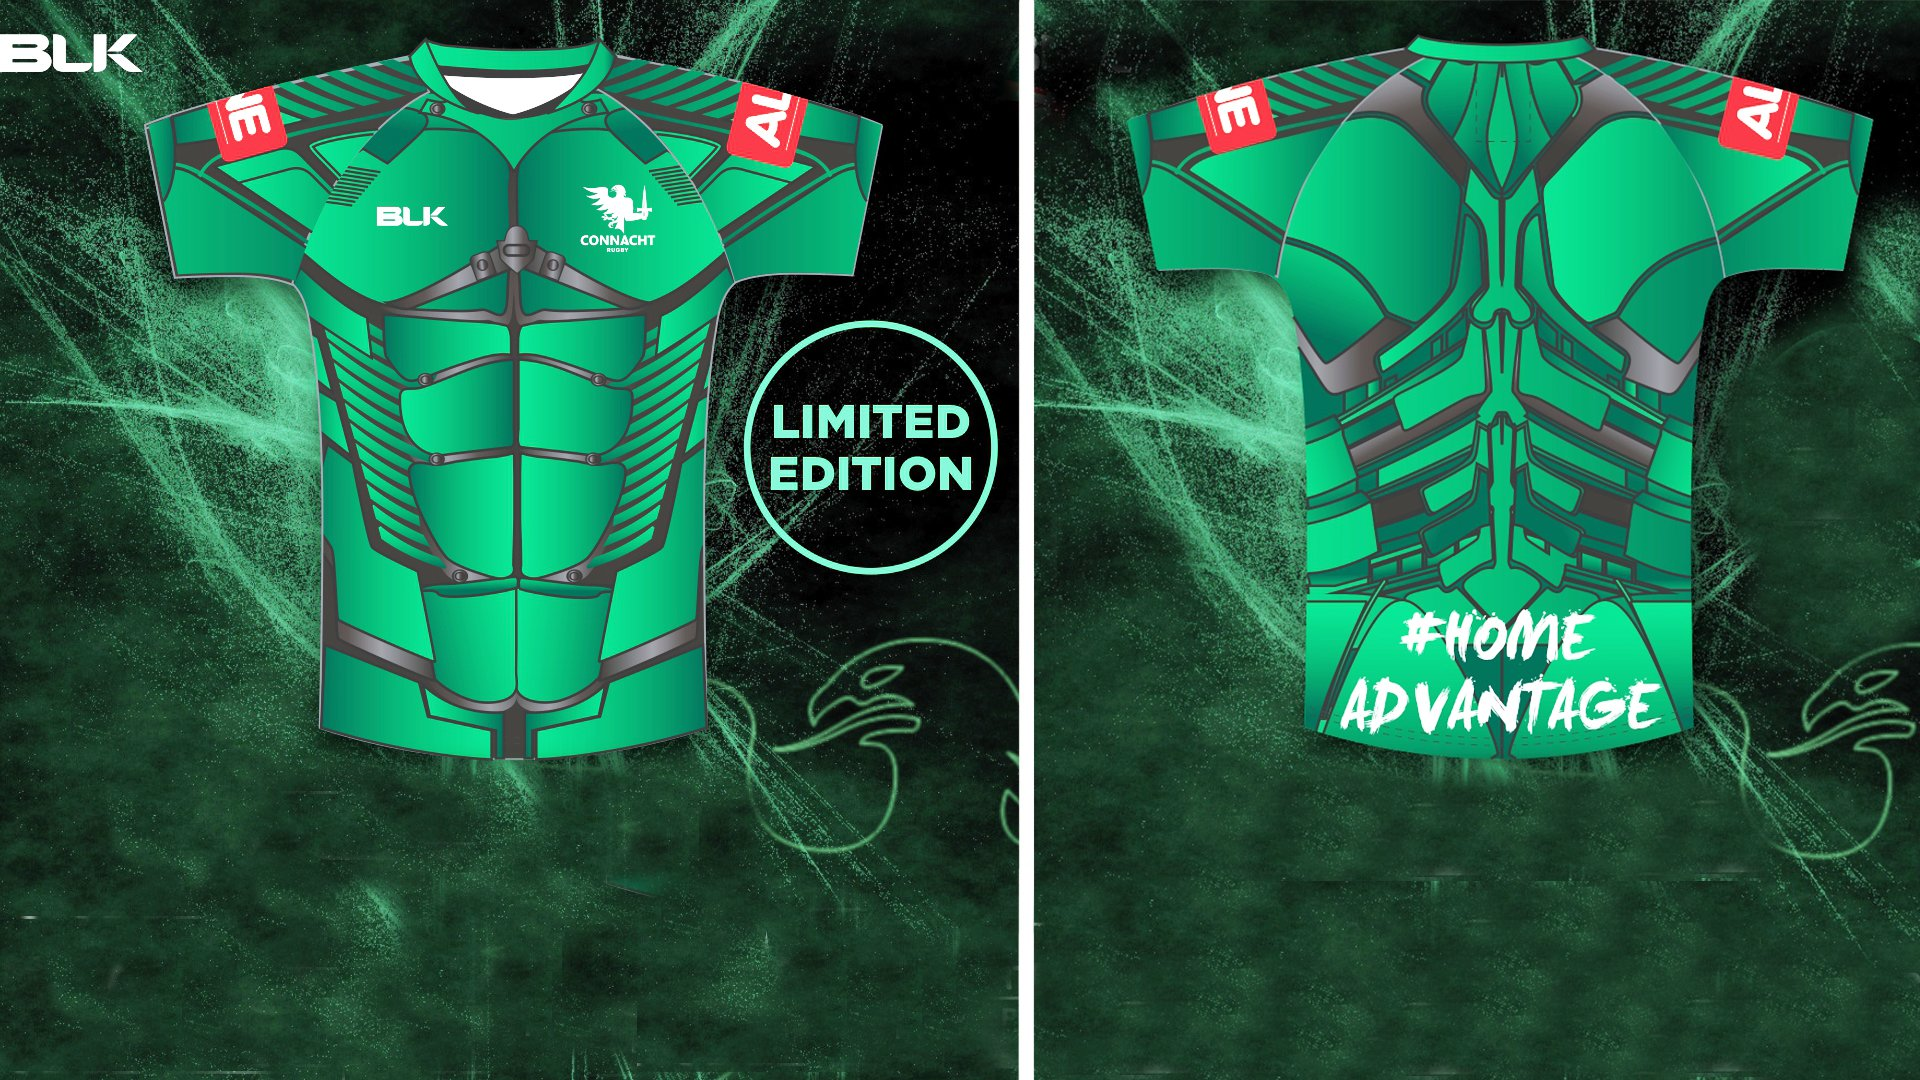 Connacht have just dropped a new kit and it's outrageous